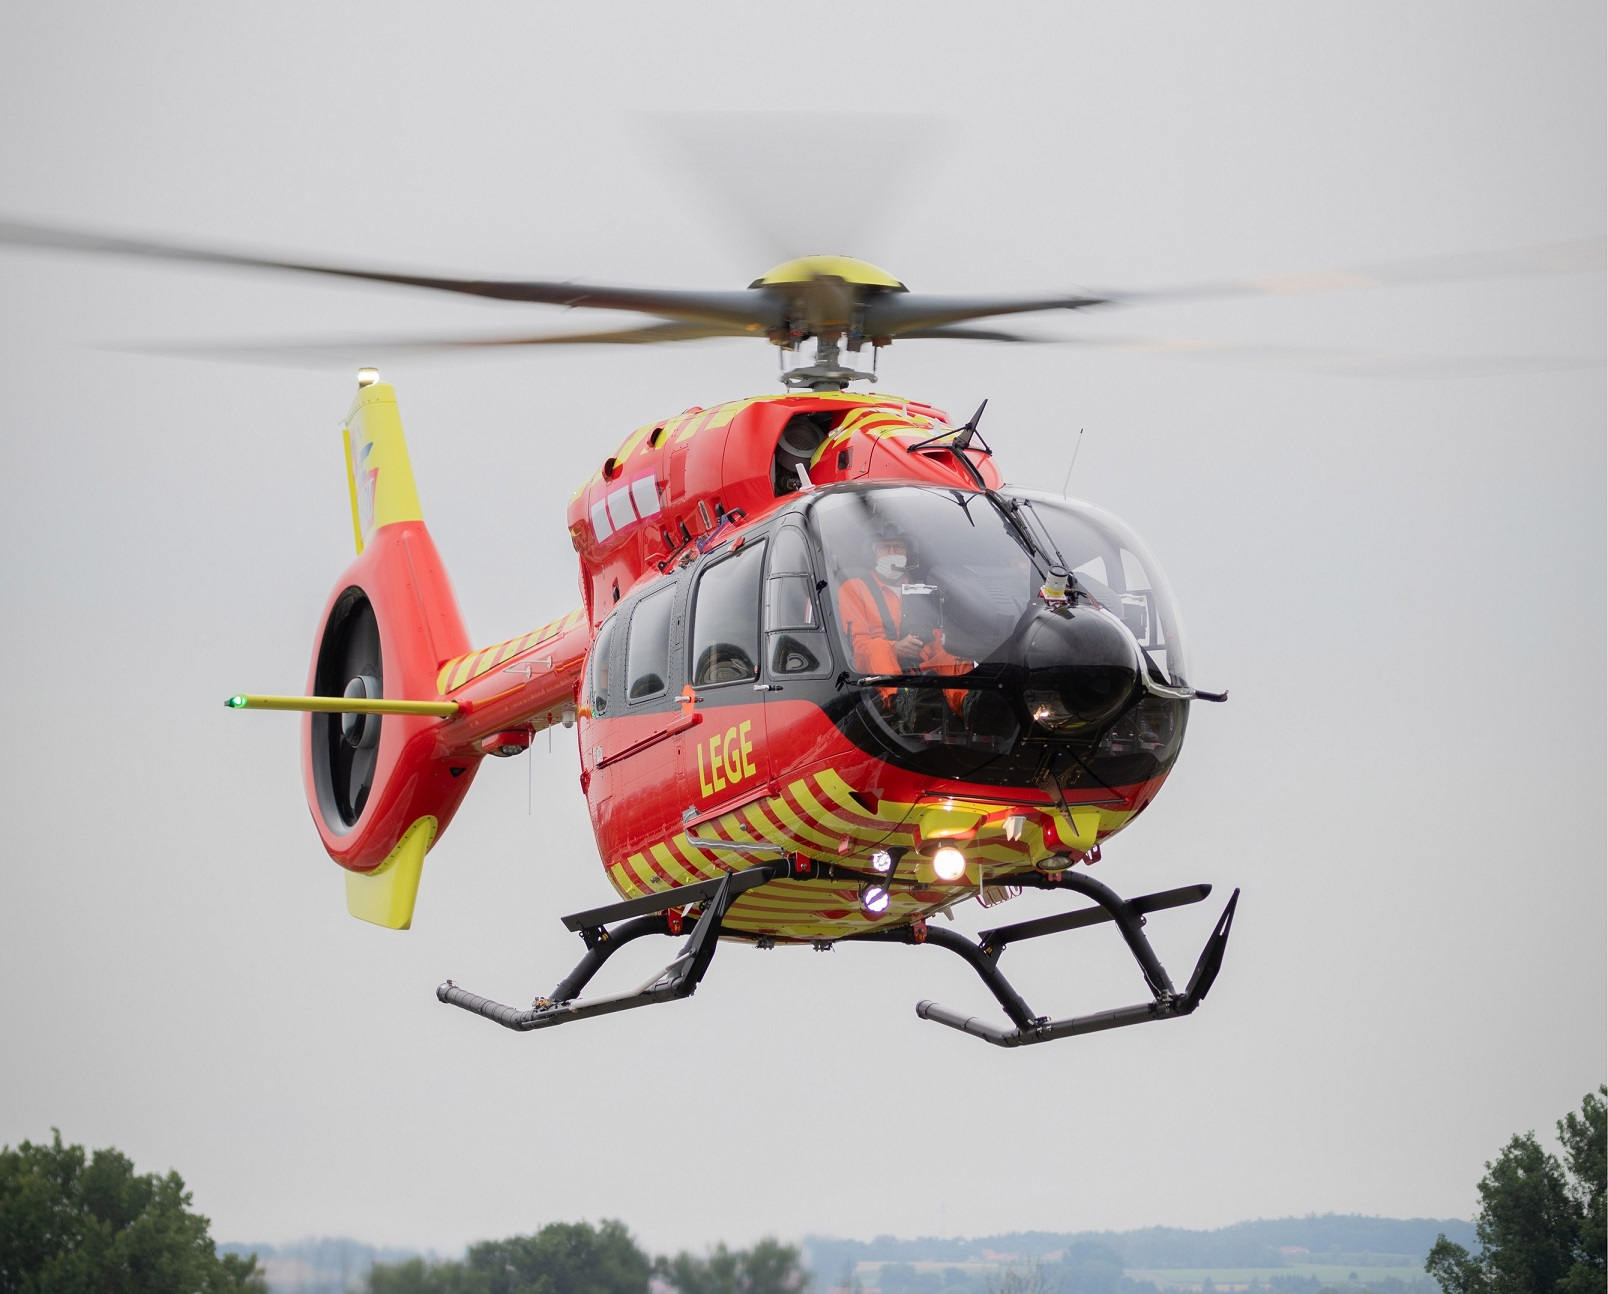 Norwegian Air Ambulance Foundation Receives First ever Five-Bladed Airbus H145 Helicopter